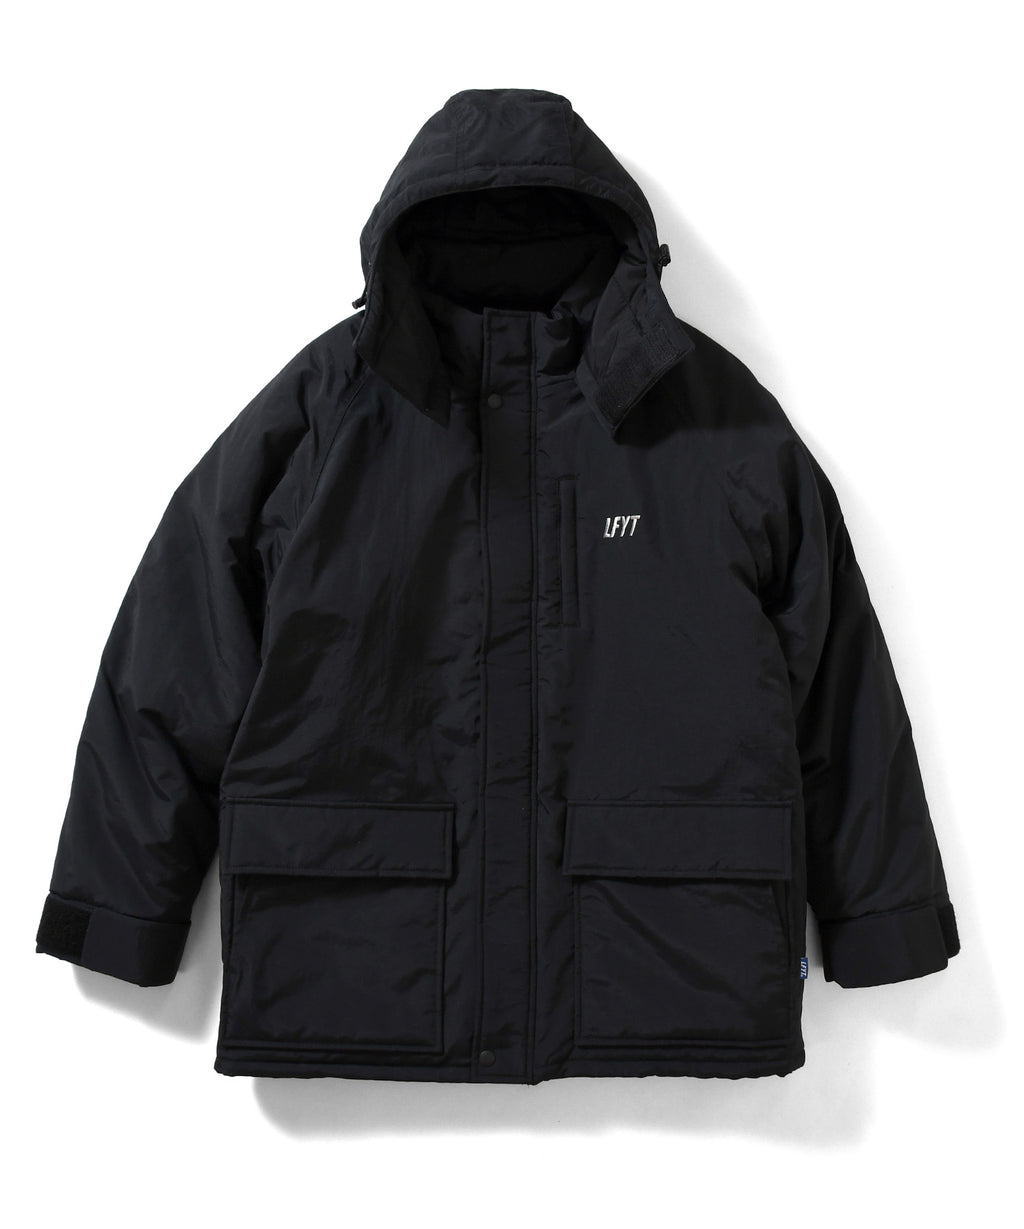 PRIMALOFT OVER SIZED JACKET LA201013 BLACK